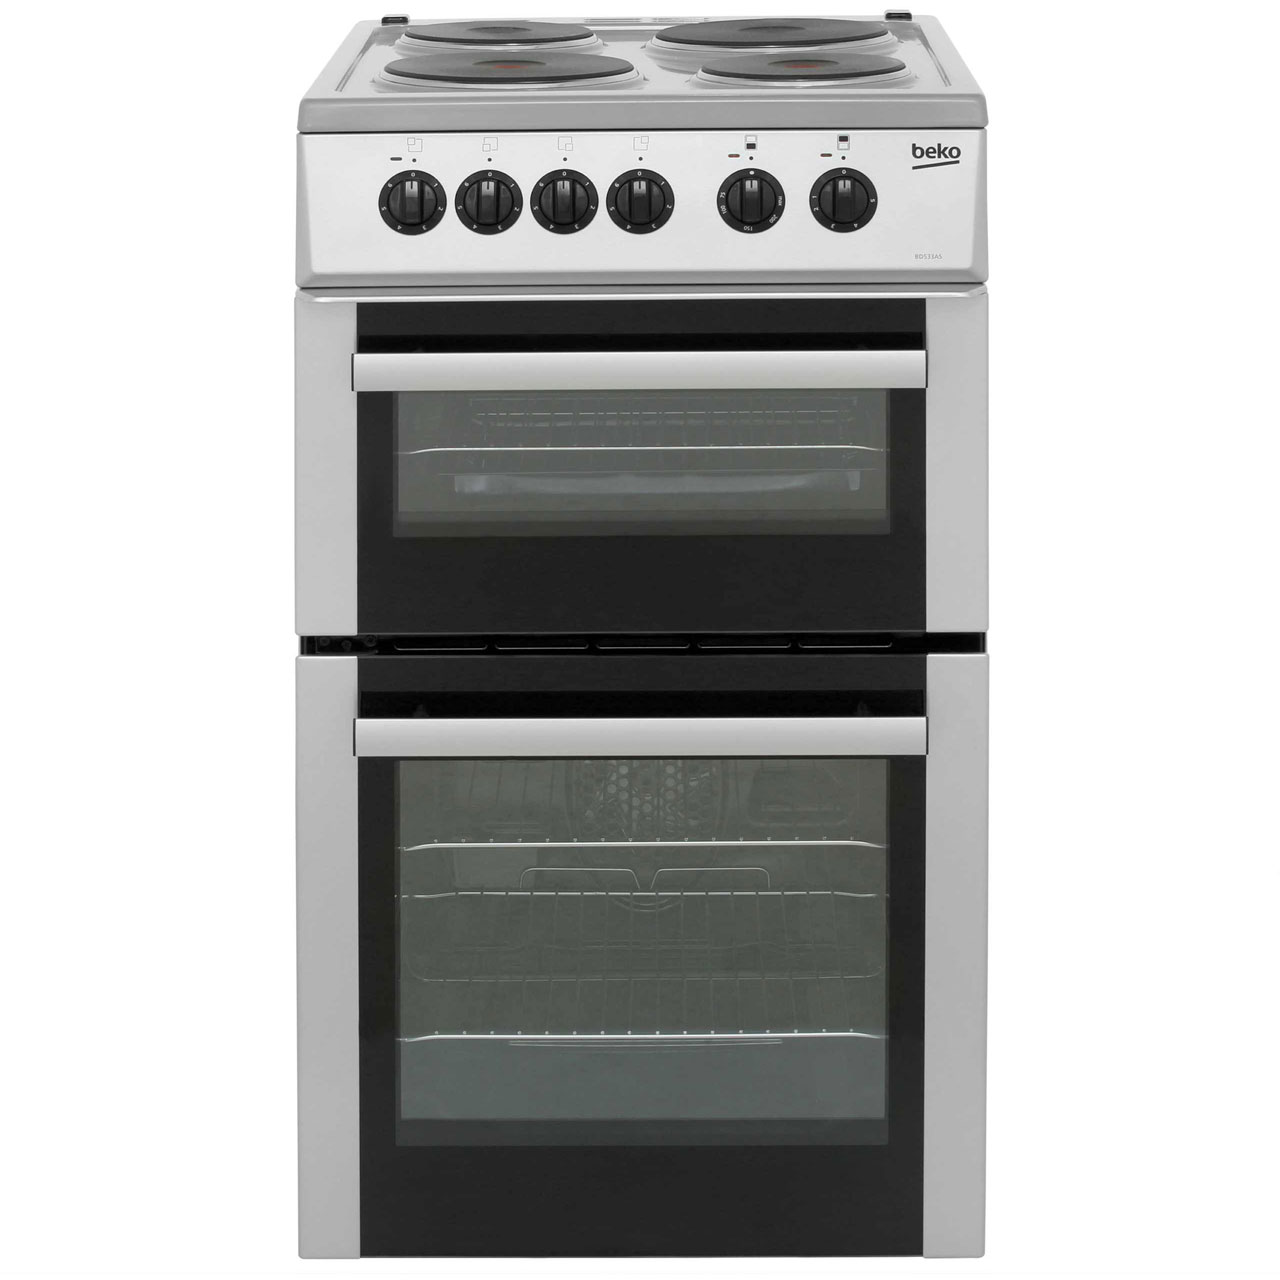 Beko BD533AS Free Standing Cooker in Silver